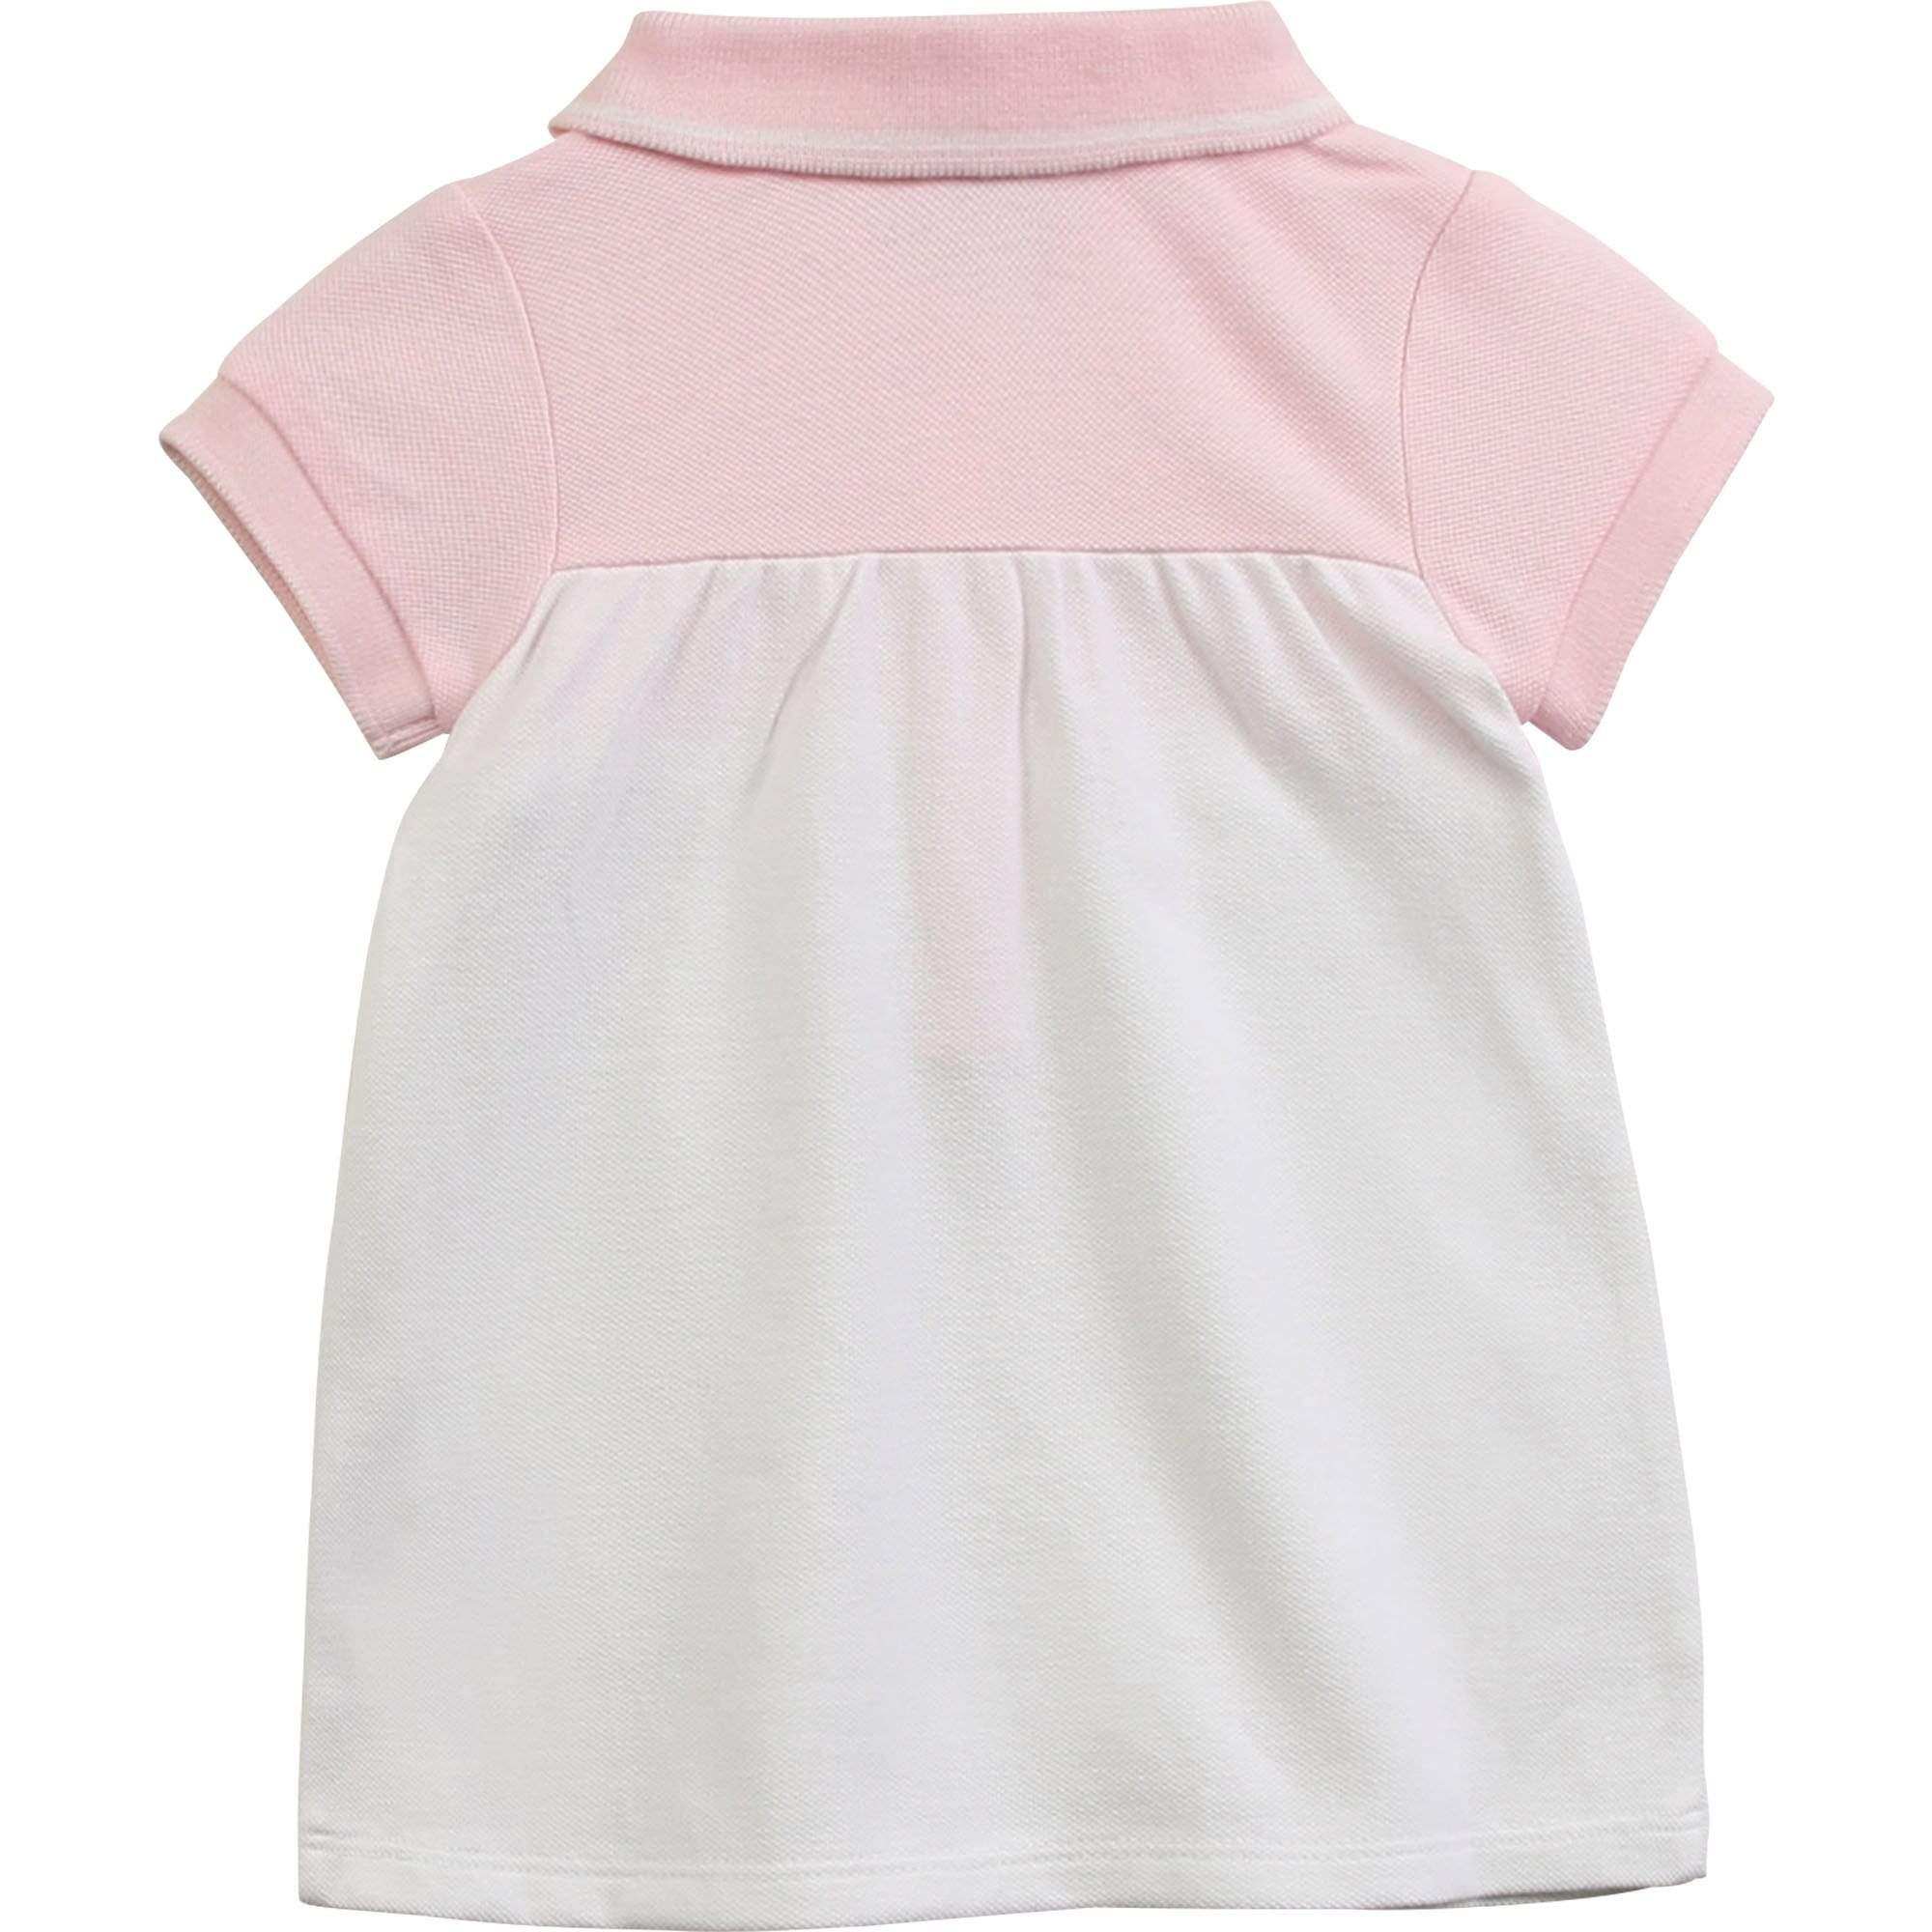 Robe Rose Et Blanche Pink And White Dress Boutique Lollipop